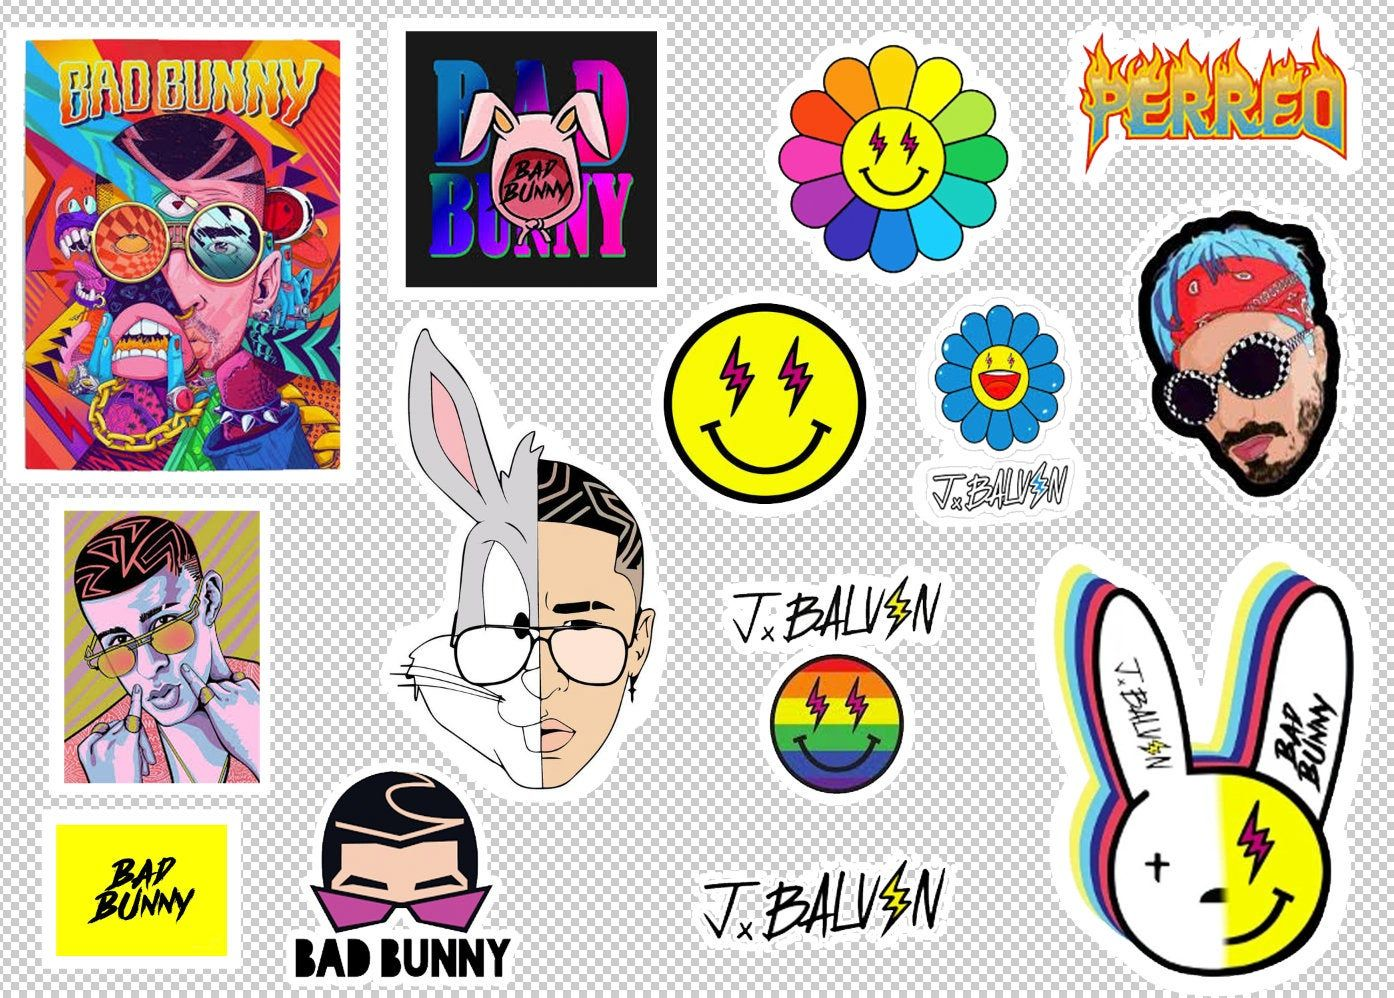 Bad Bunny And J Balvin Stickers Bad Bunny Free Shipping Musician J Lo Laptop Cute In 2020 Bunny Wallpaper Bunny Art Print Stickers